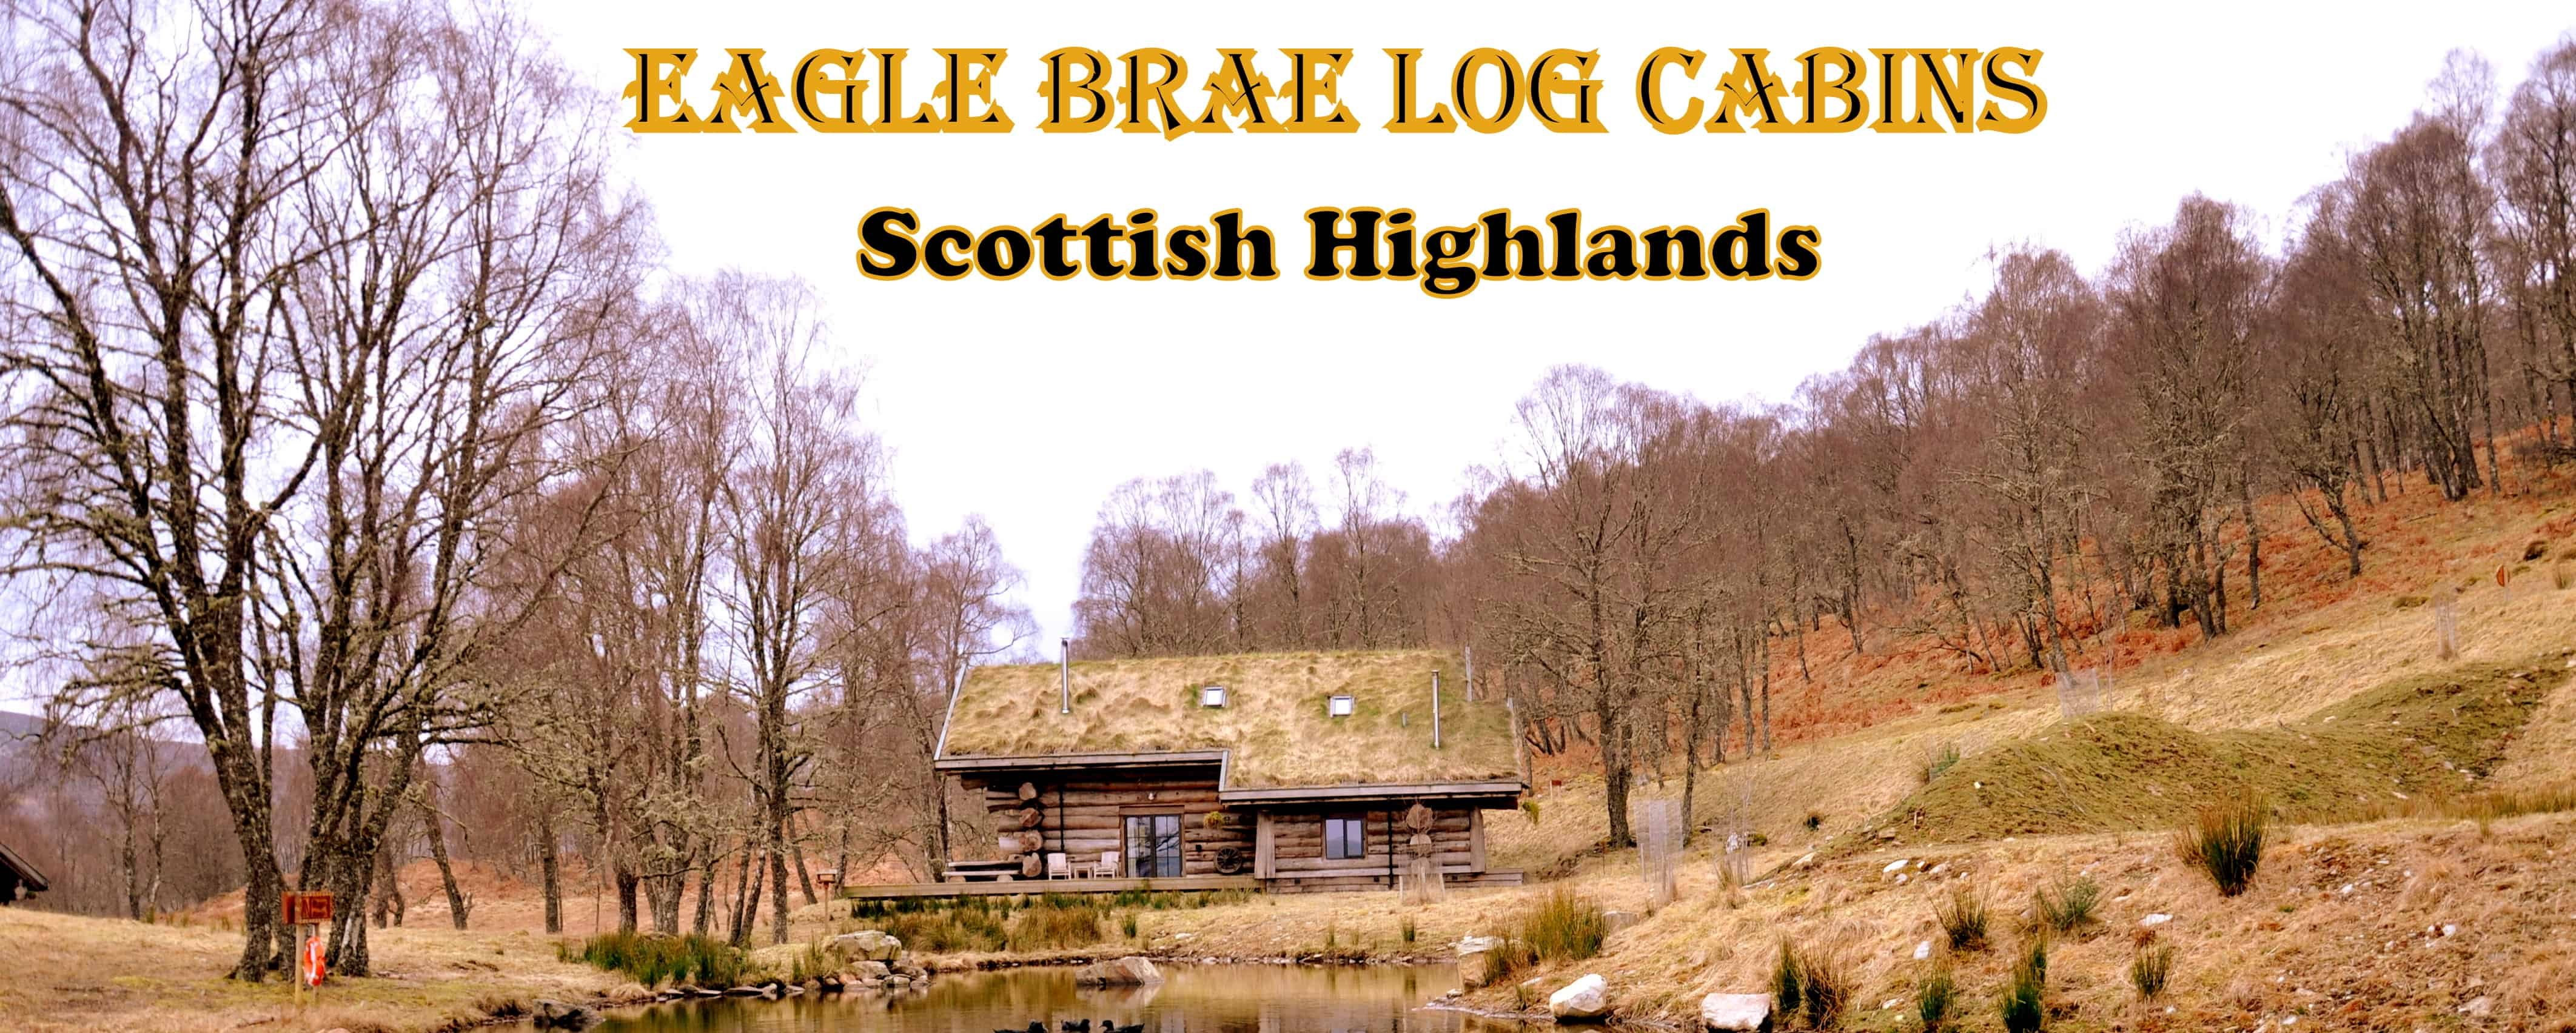 Rustic, sustainable, wild, yet a luxury accommodation in Scotland – Eagle Brae Log Cabins